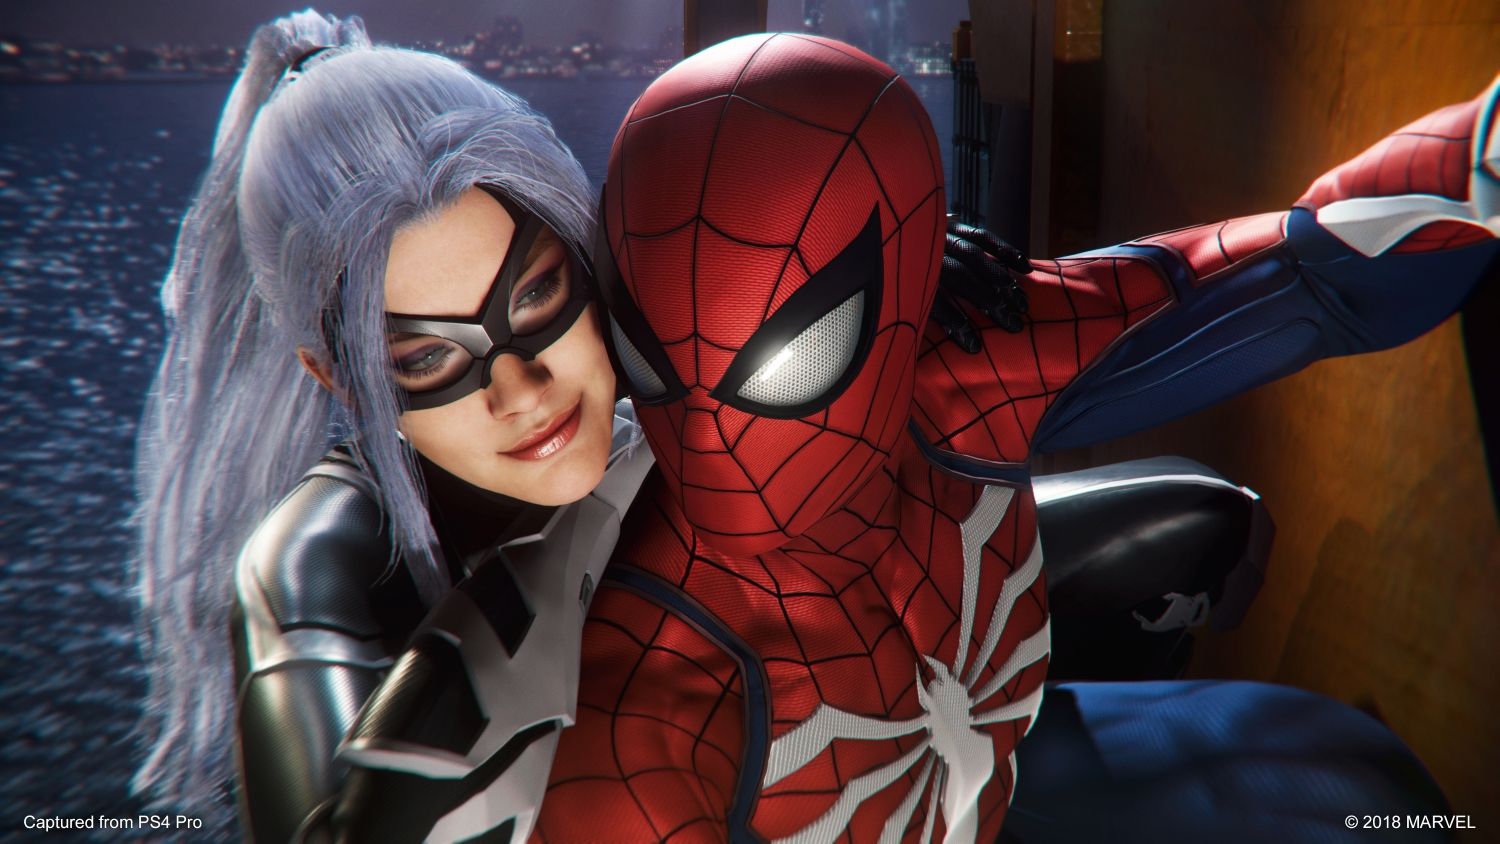 Marvel's Spider-Man: The Heist (PS4) - Mary Jane is not going to like this